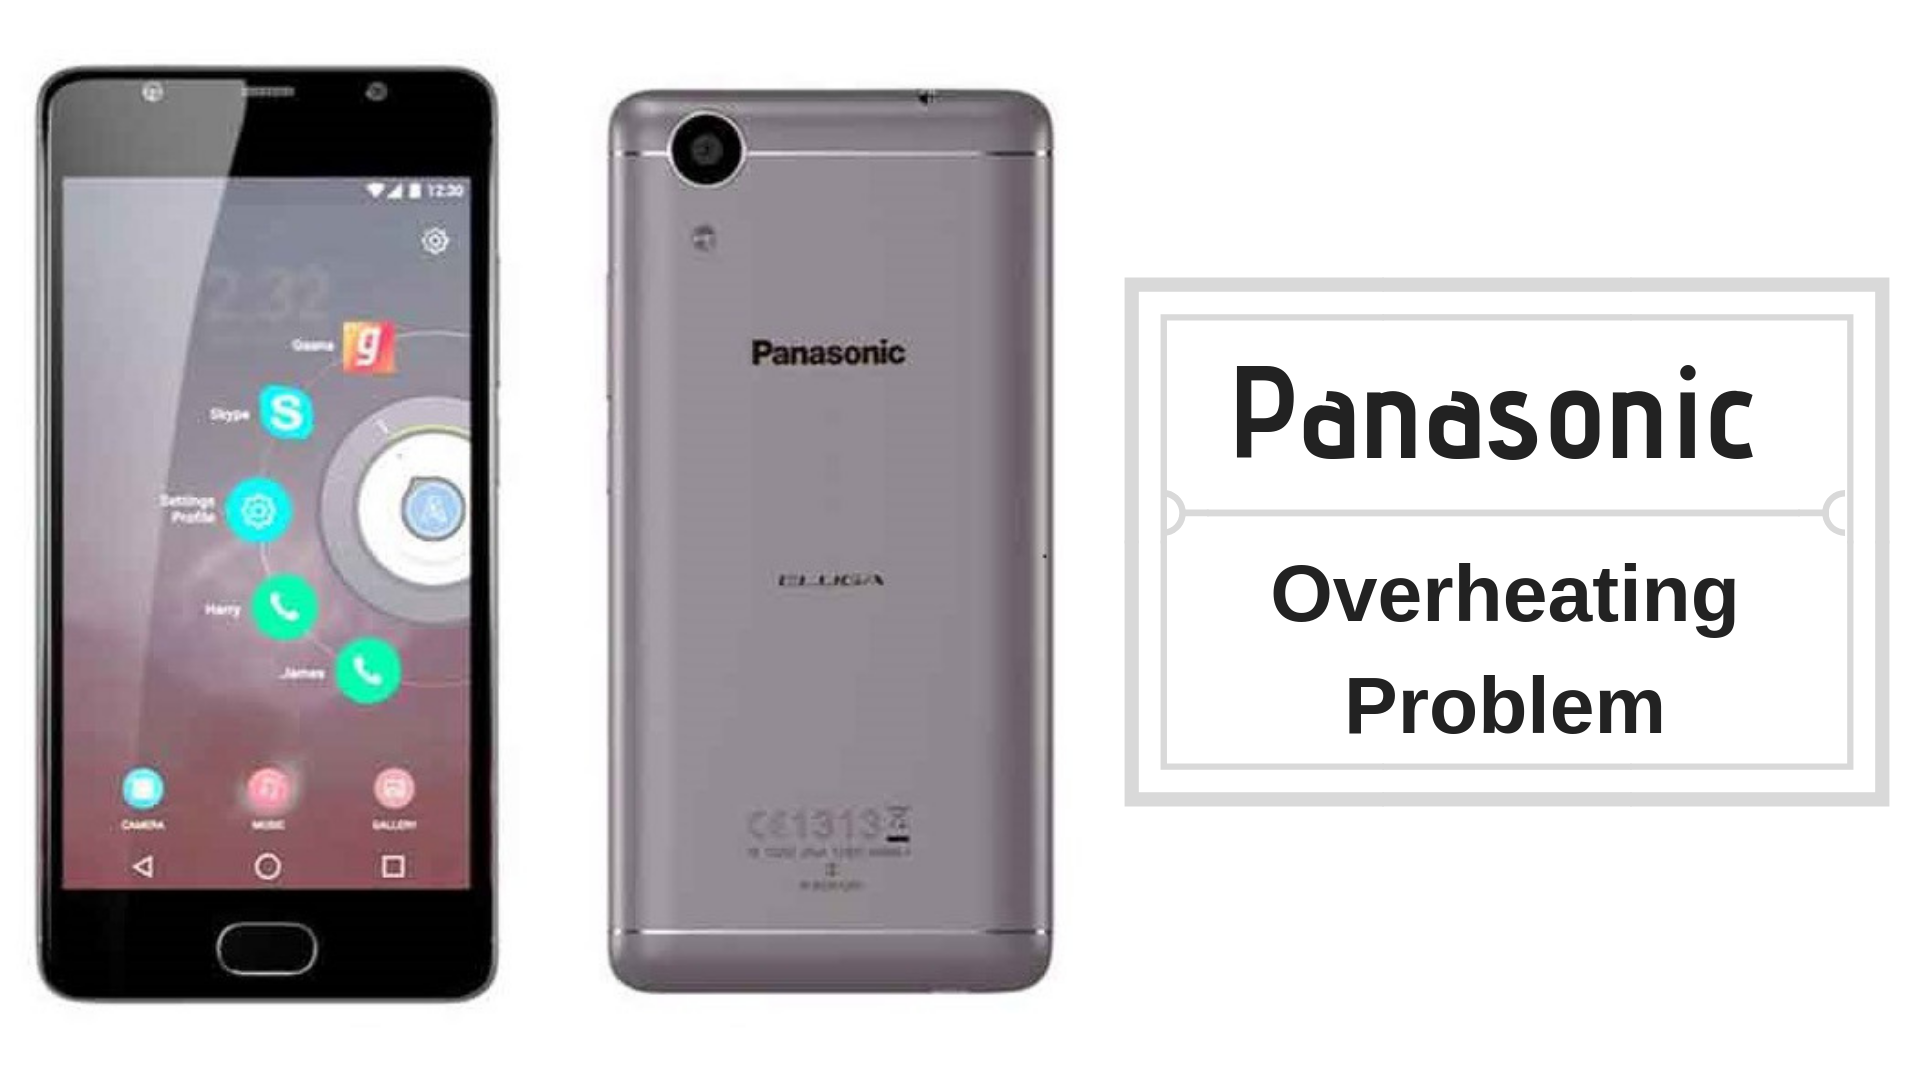 How To Fix Panasonic Overheating Problem? - Troubleshooting Fix & Tips